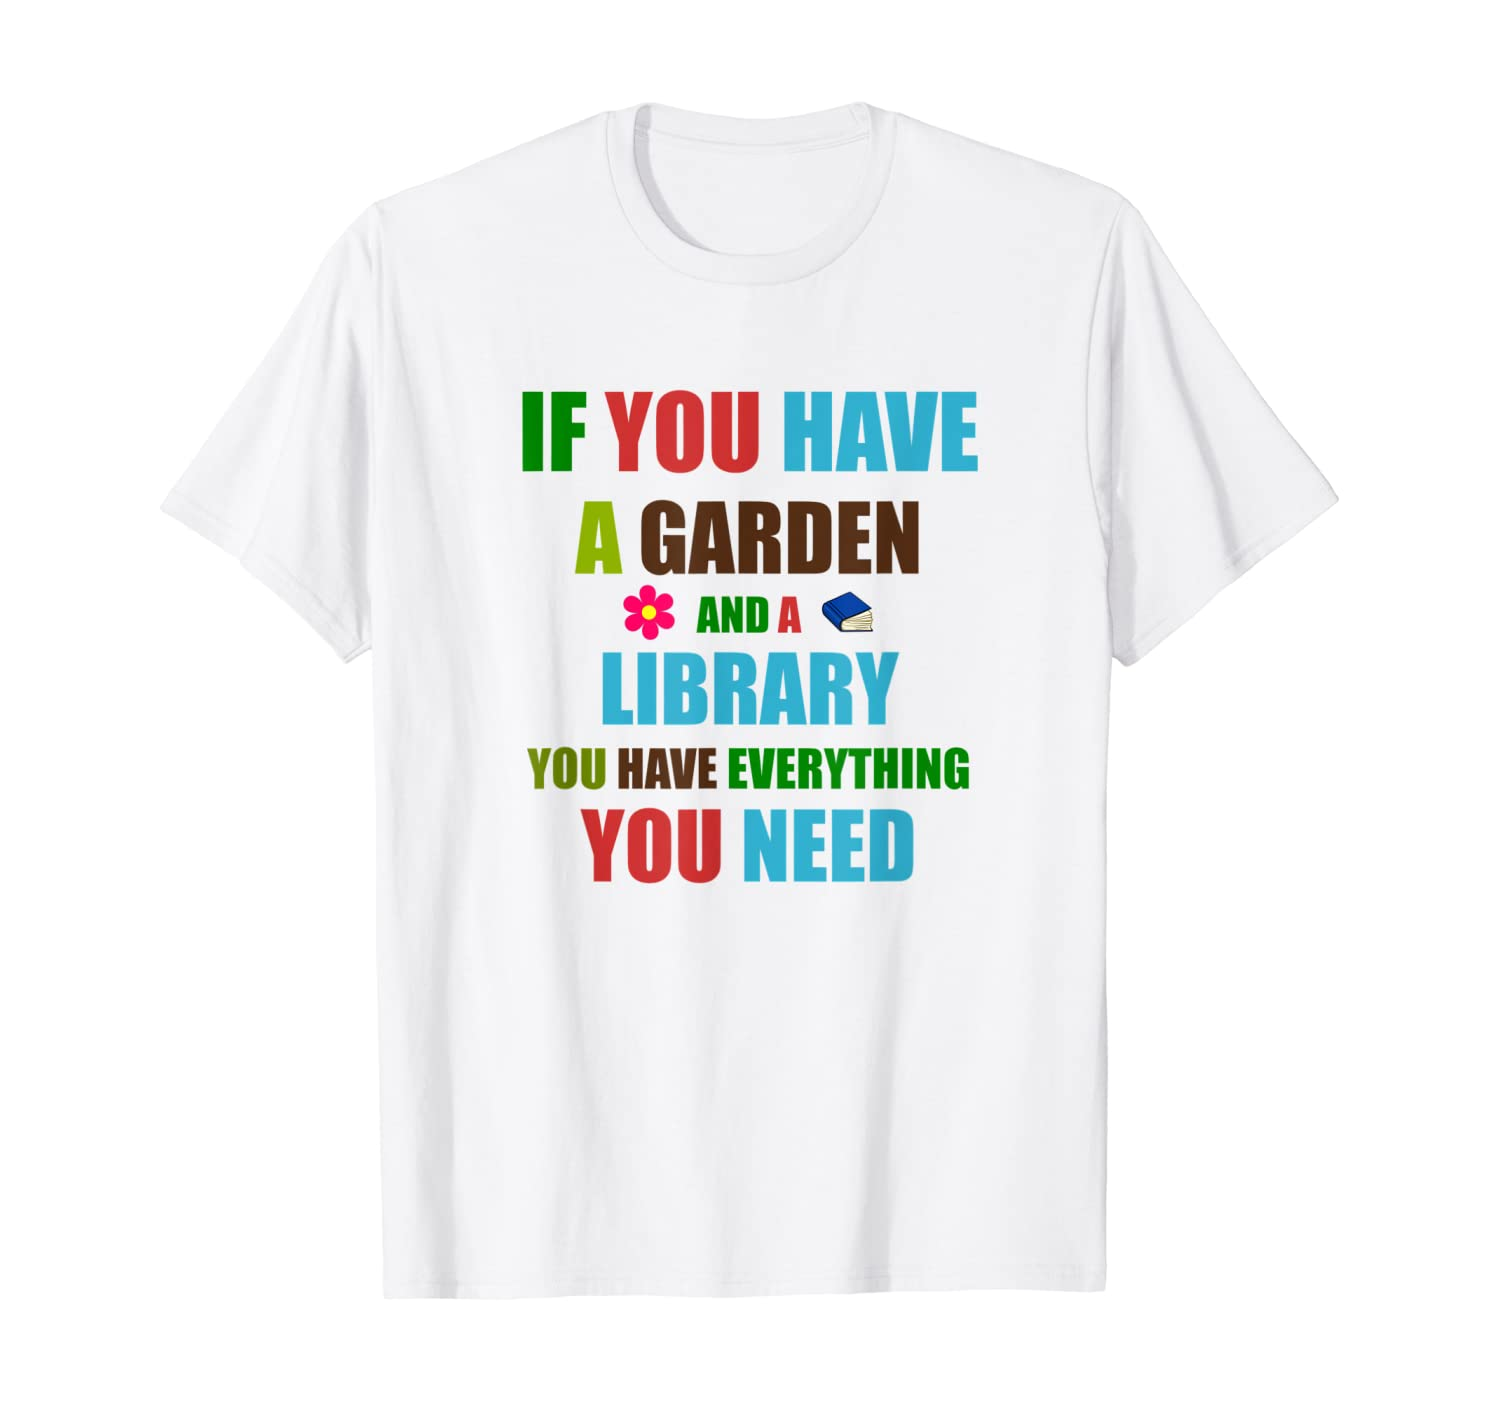 If you have a garden and a library - T-Shirt